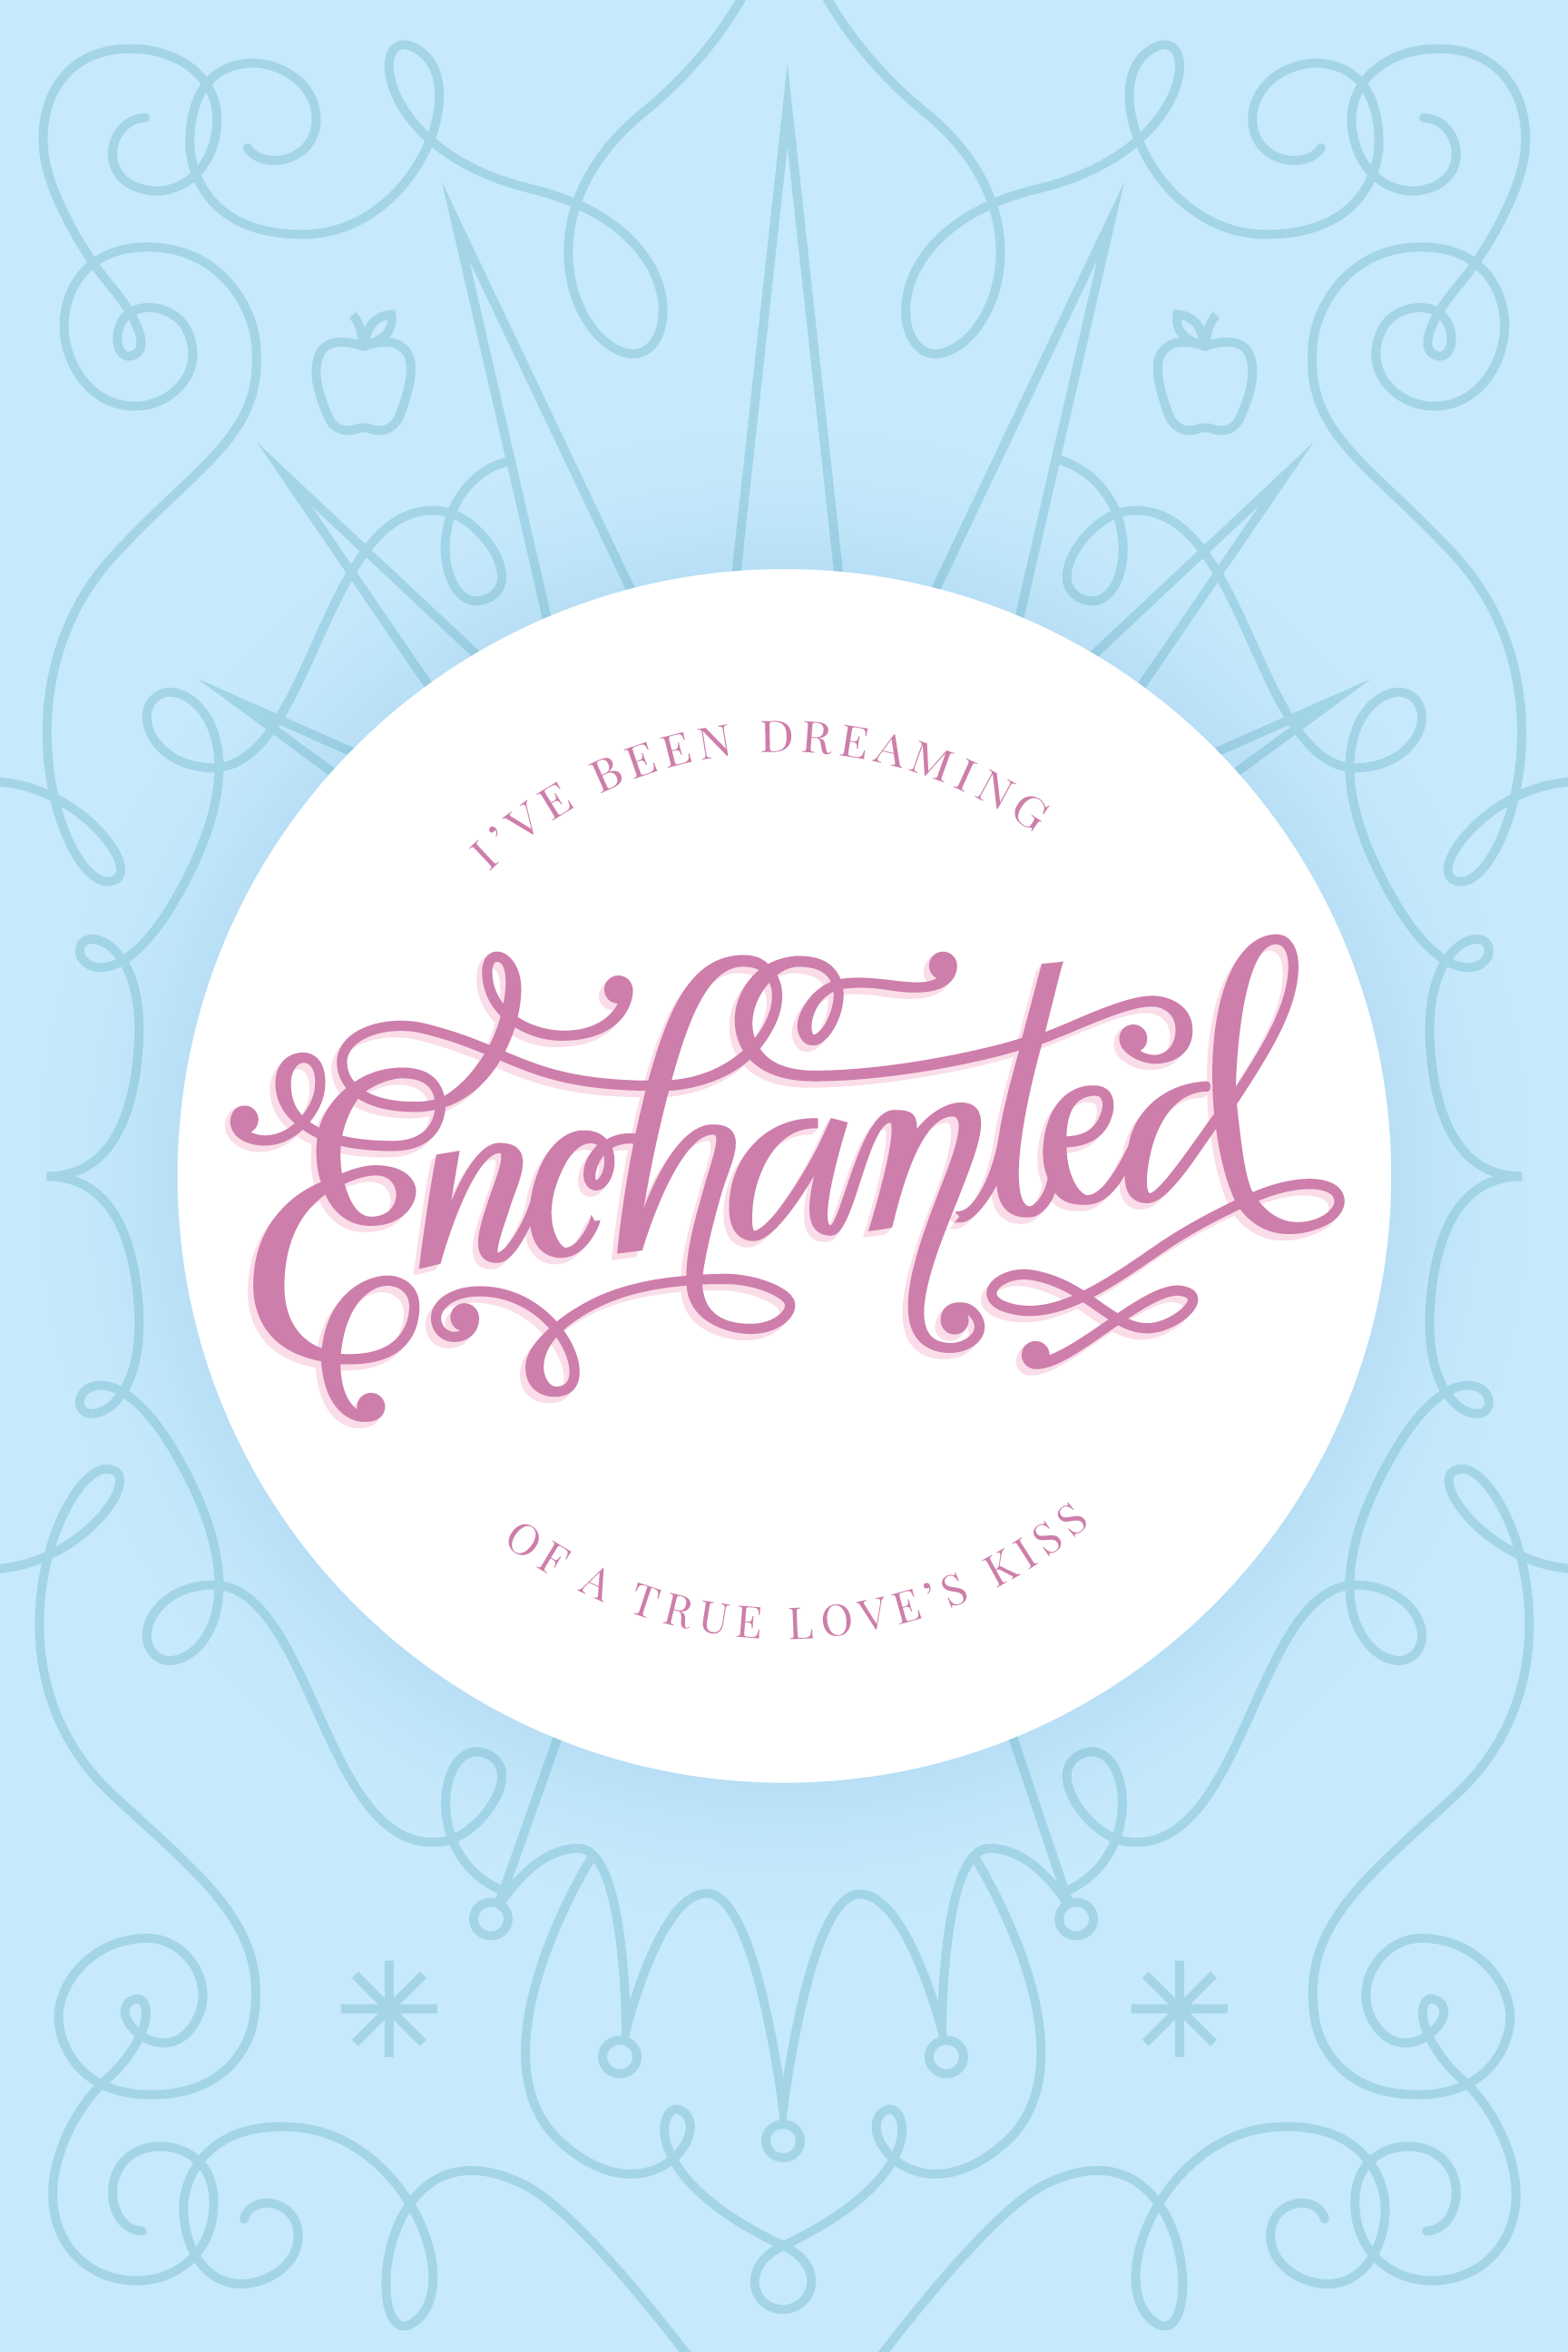 Enchanted_PaigeWhitaker2.png